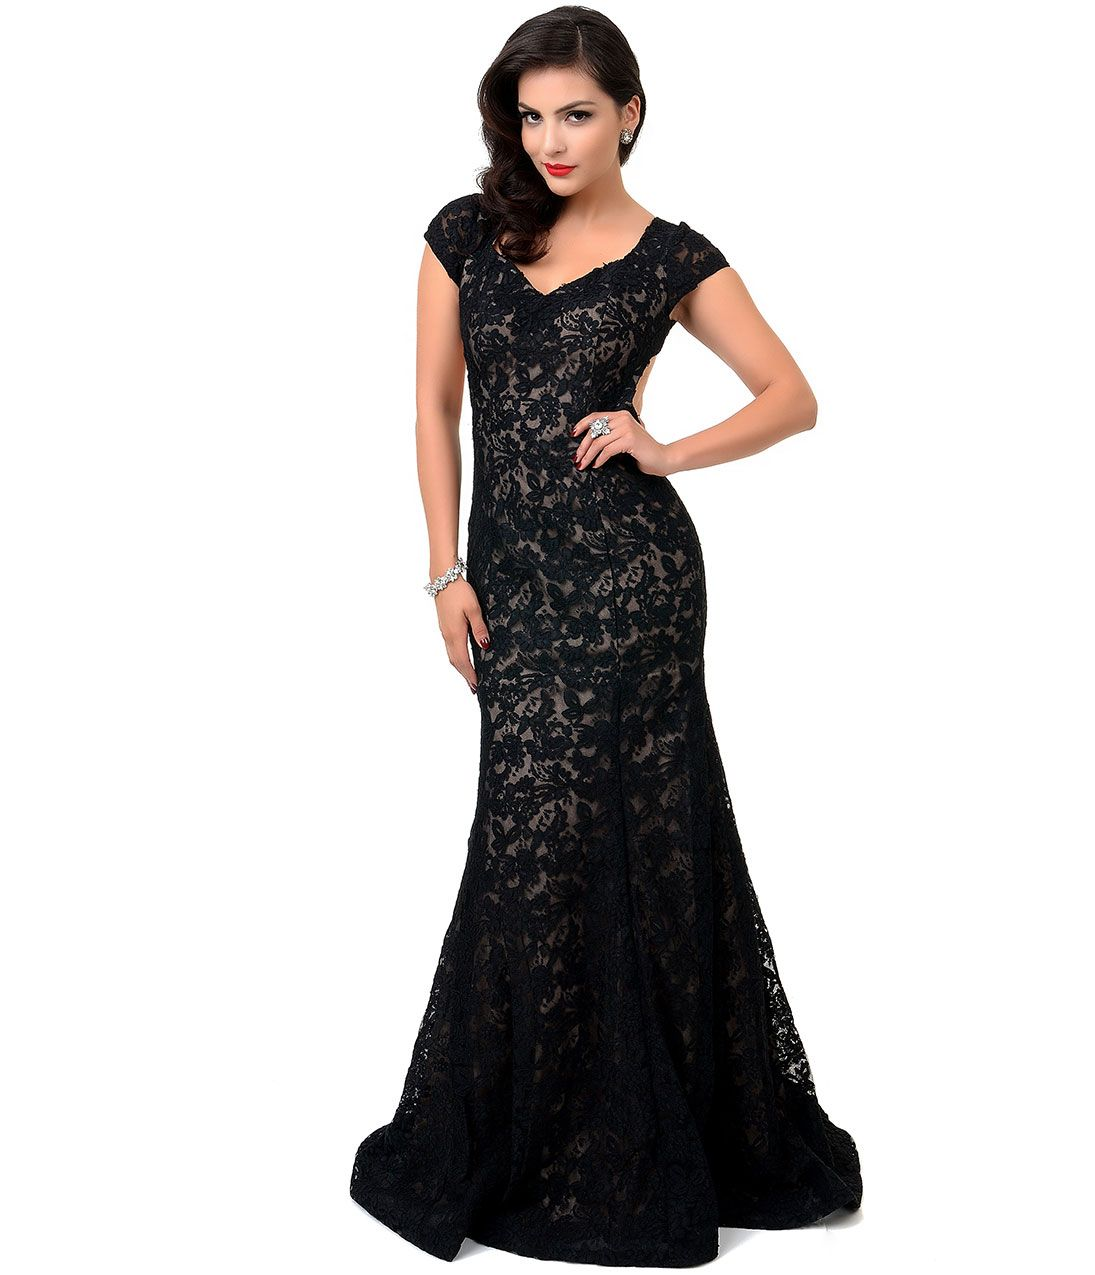 S style black u nude scalloped lace fitted evening gown unique